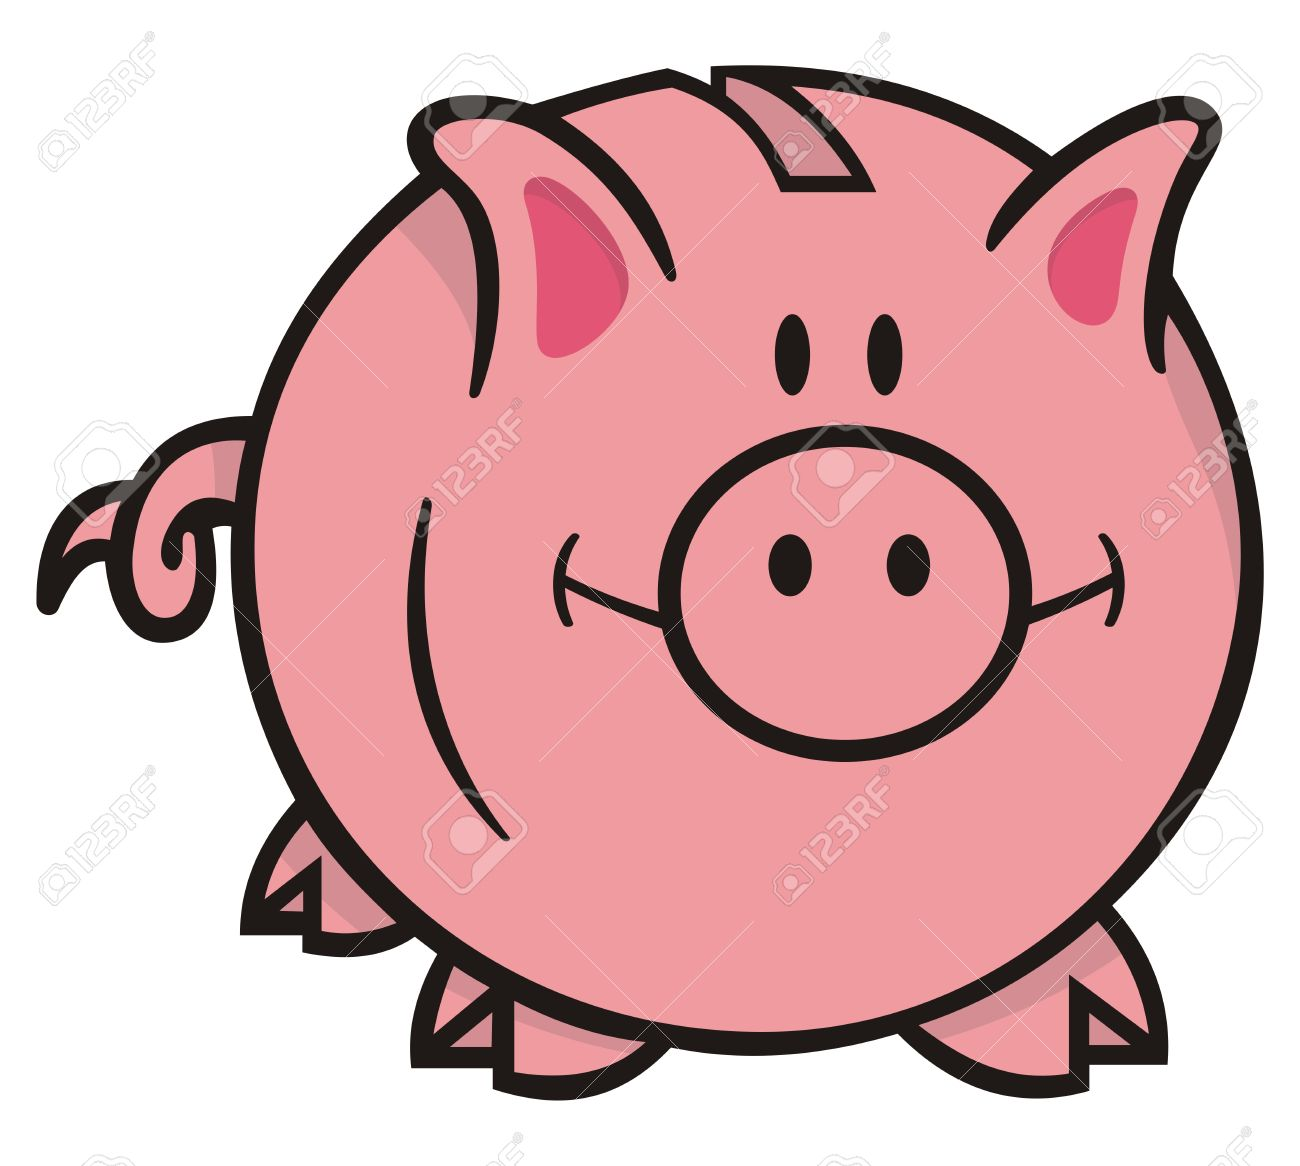 Smiling pink piggy bank cartoon illustration on white background looking front. - 9448168